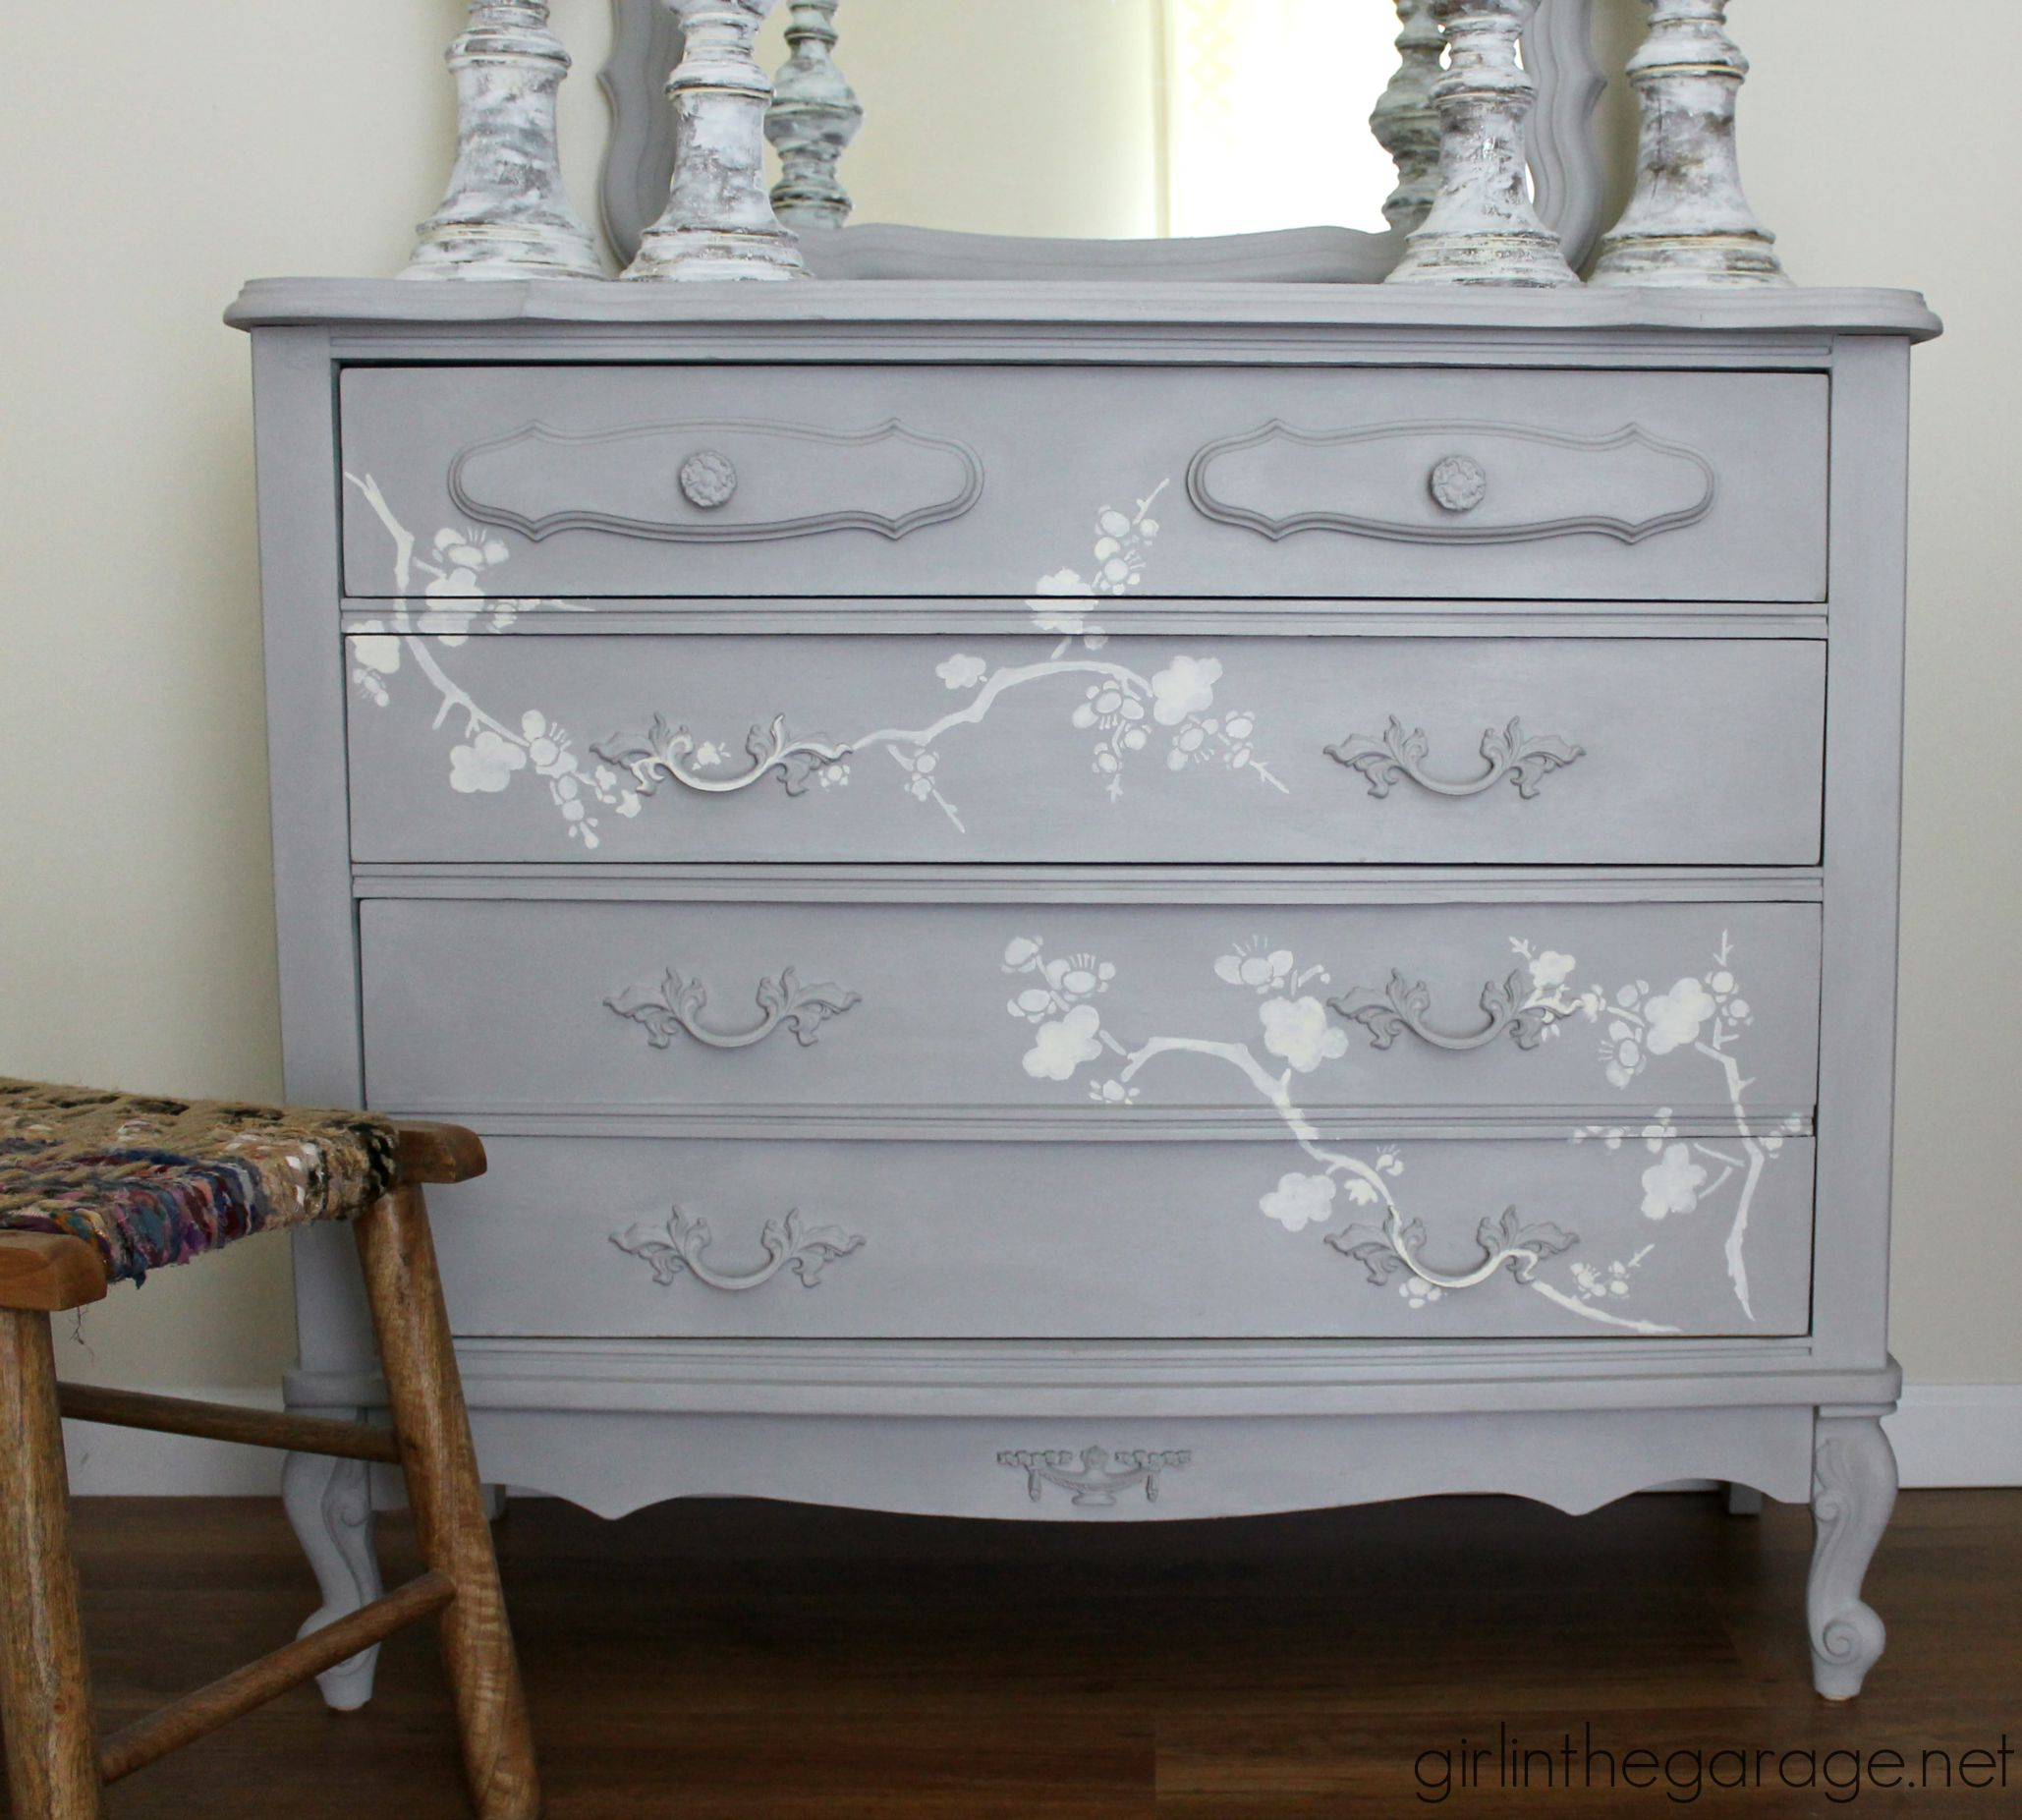 French Provincial Dresser Makeover With Chalk Paint® And Cherry Blossoms  Stencil.